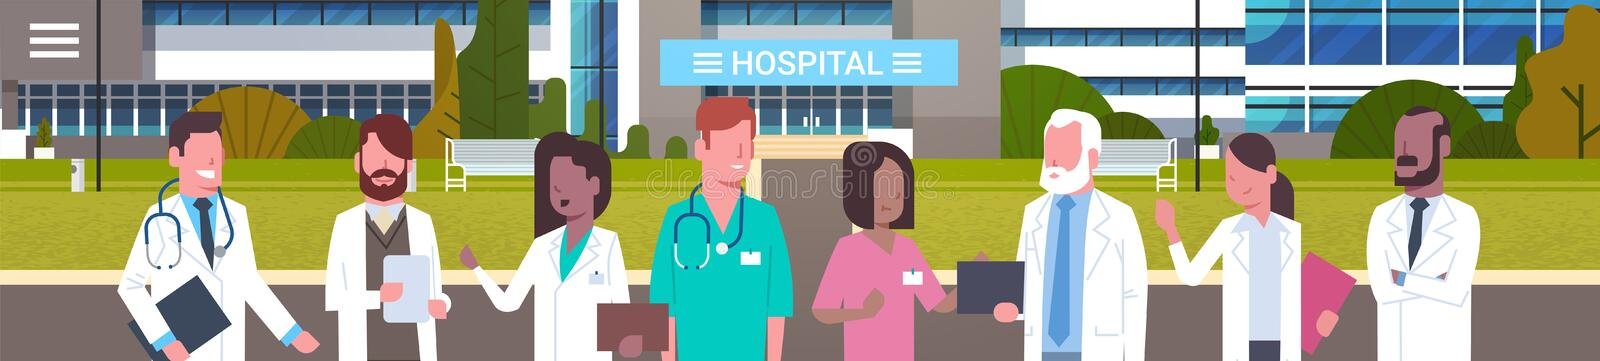 Group Of Medical Doctors Standing In Front Of Hospital Building Exterior Horizontal Banner royalty free illustration